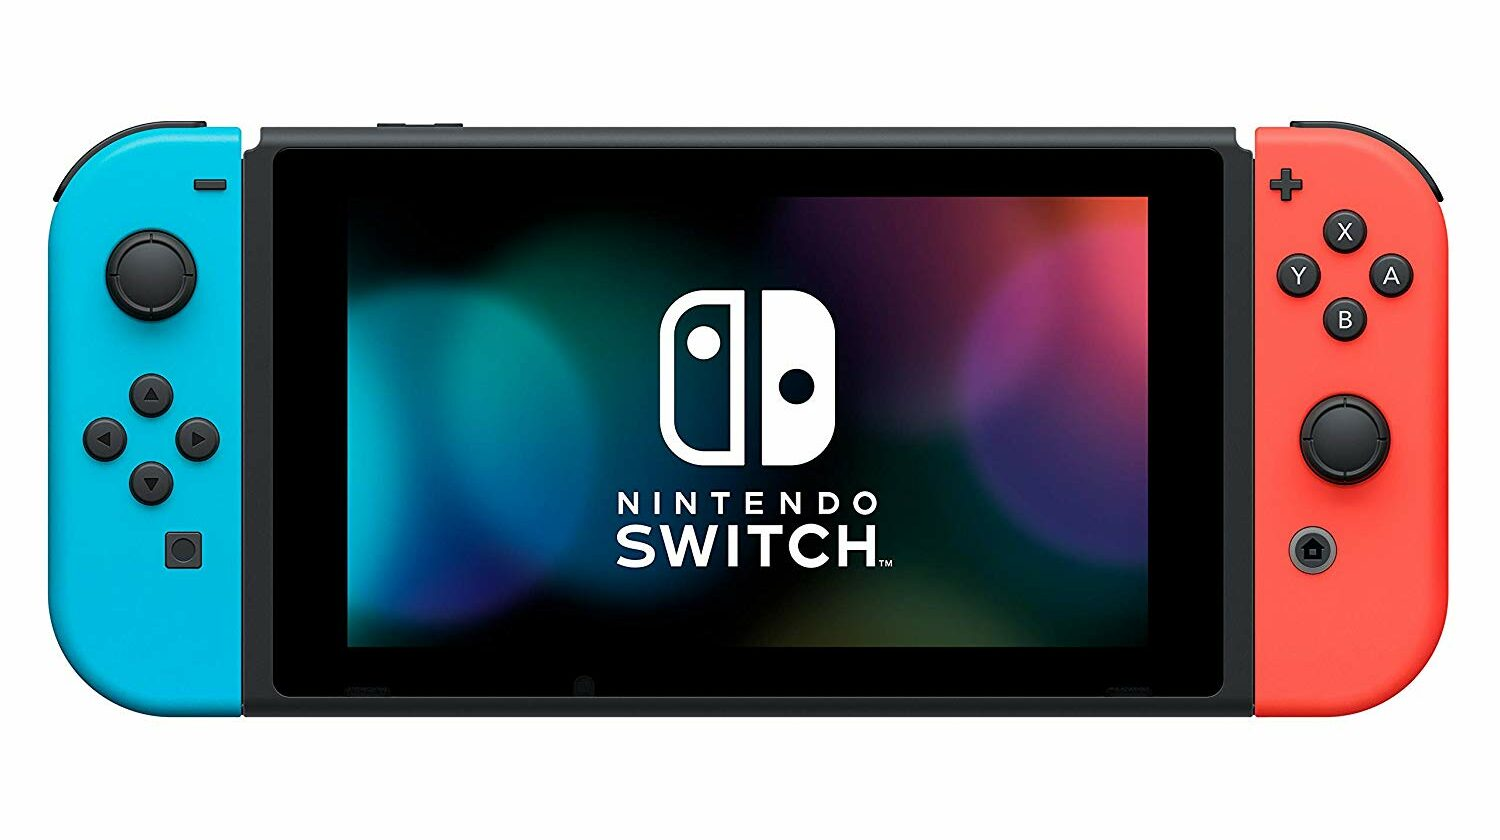 See What Games Made the Holiday Hit Gift List: Nintendo Switch